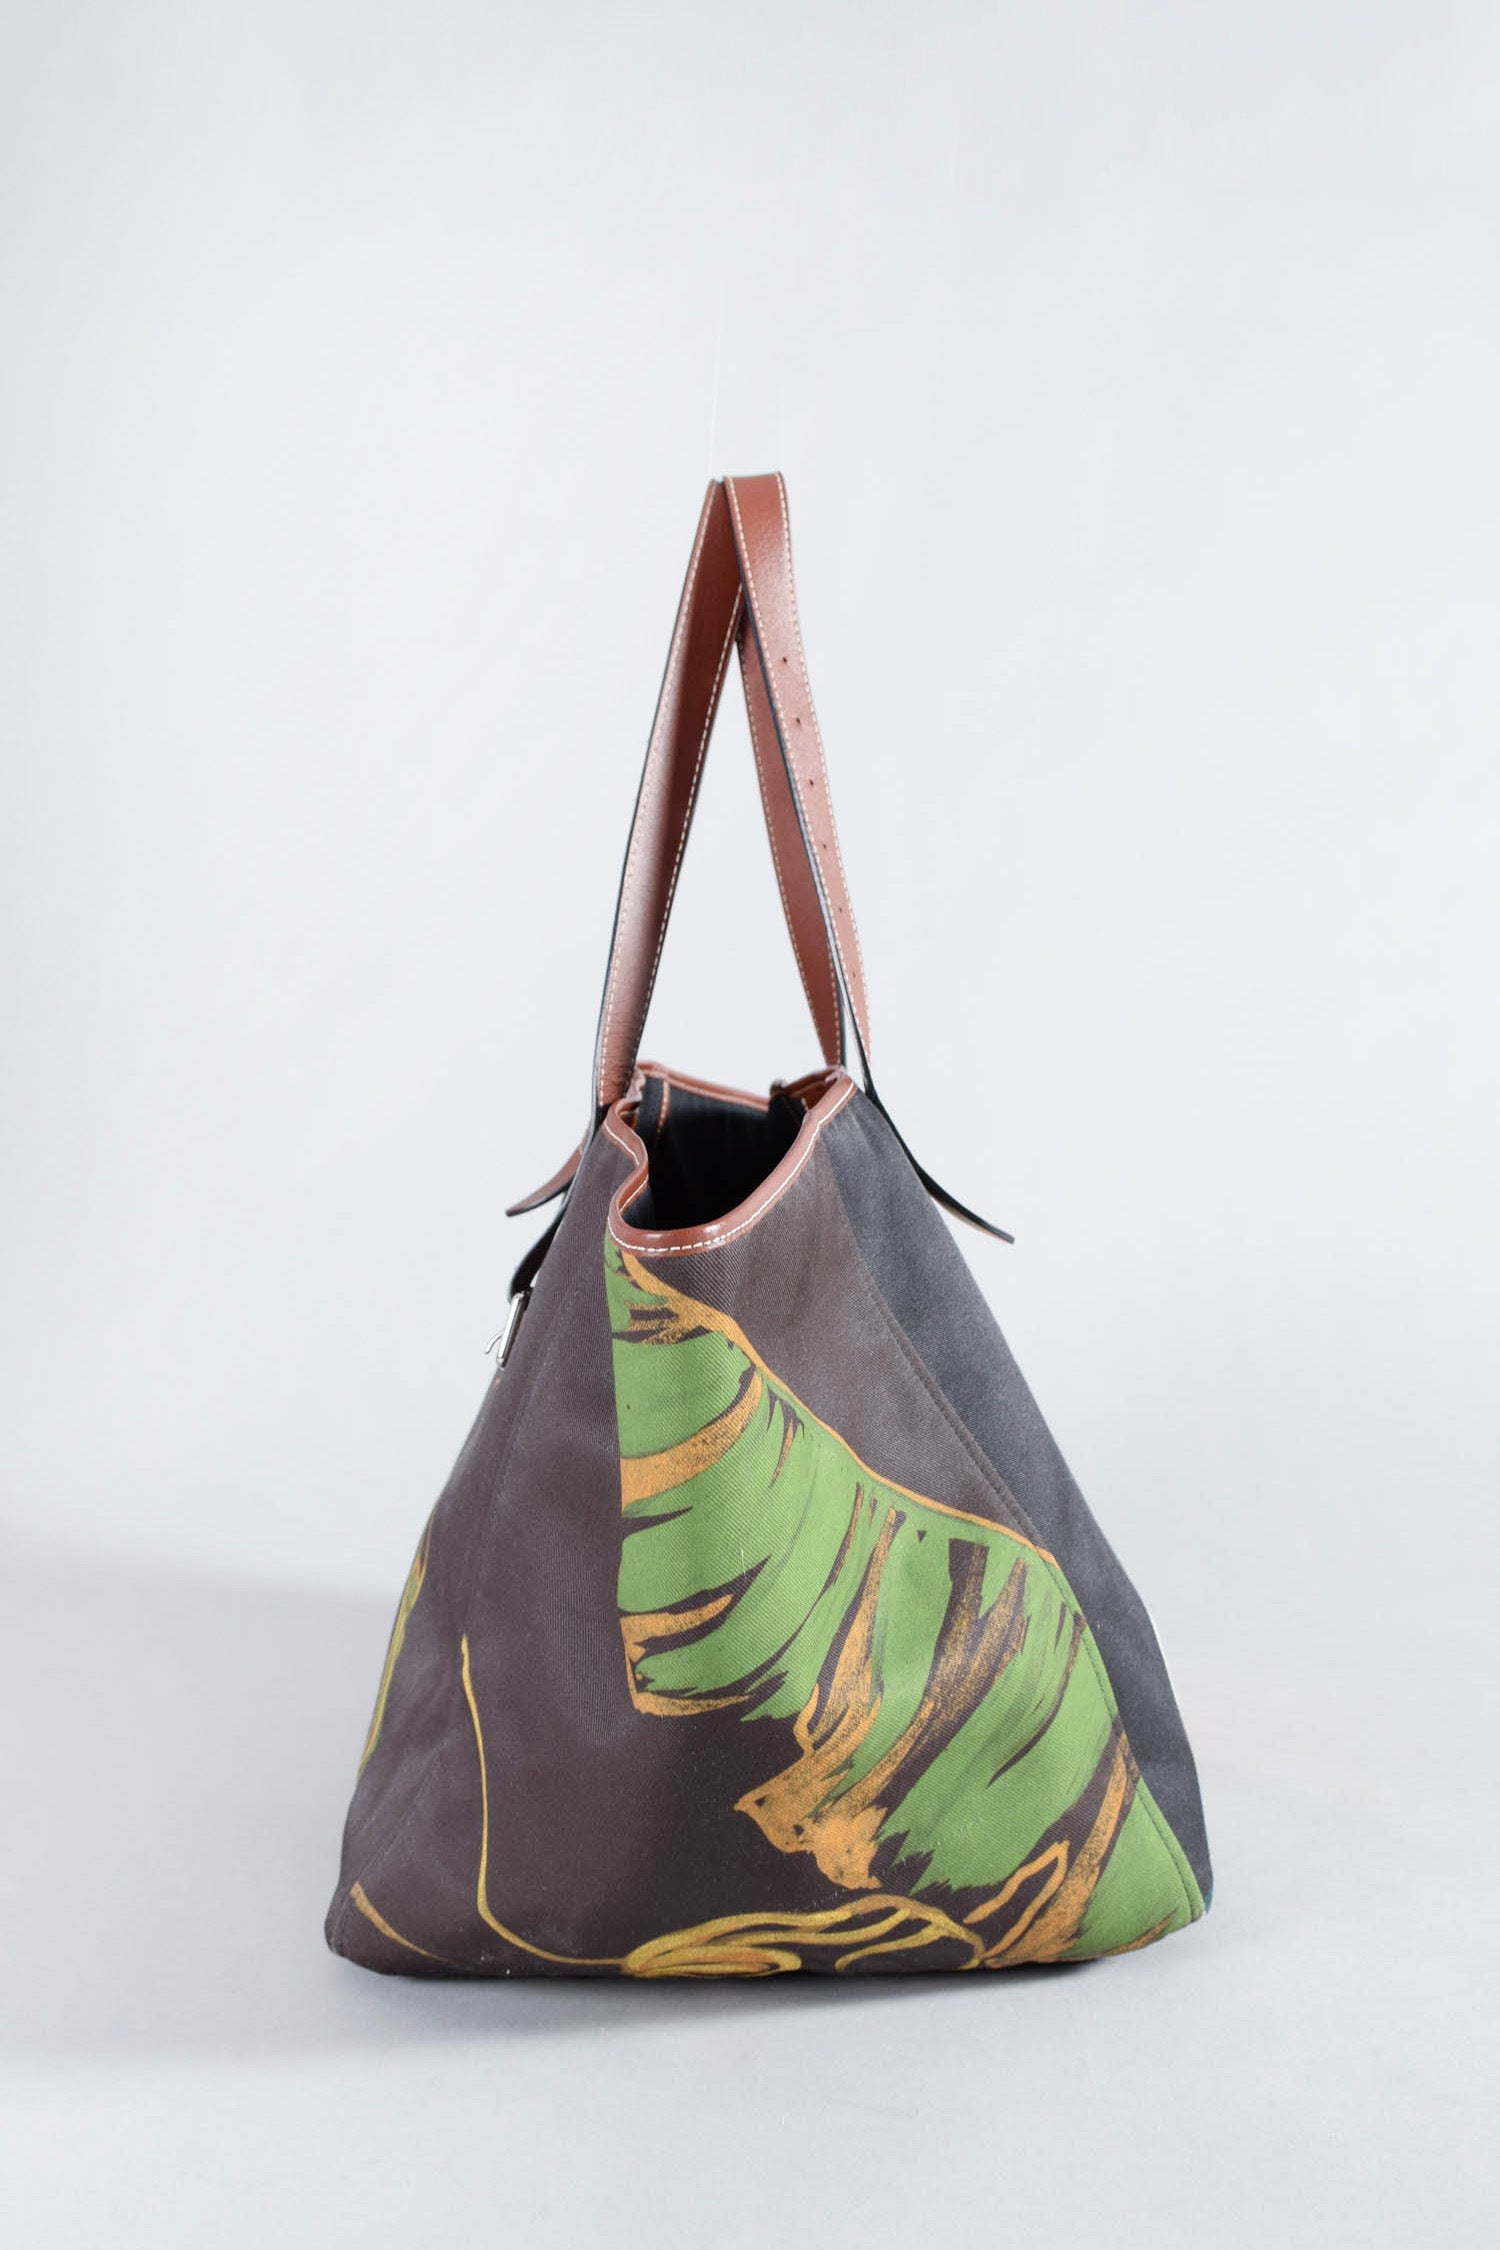 J.W. Anderson Painted Tote (Retail $1400)